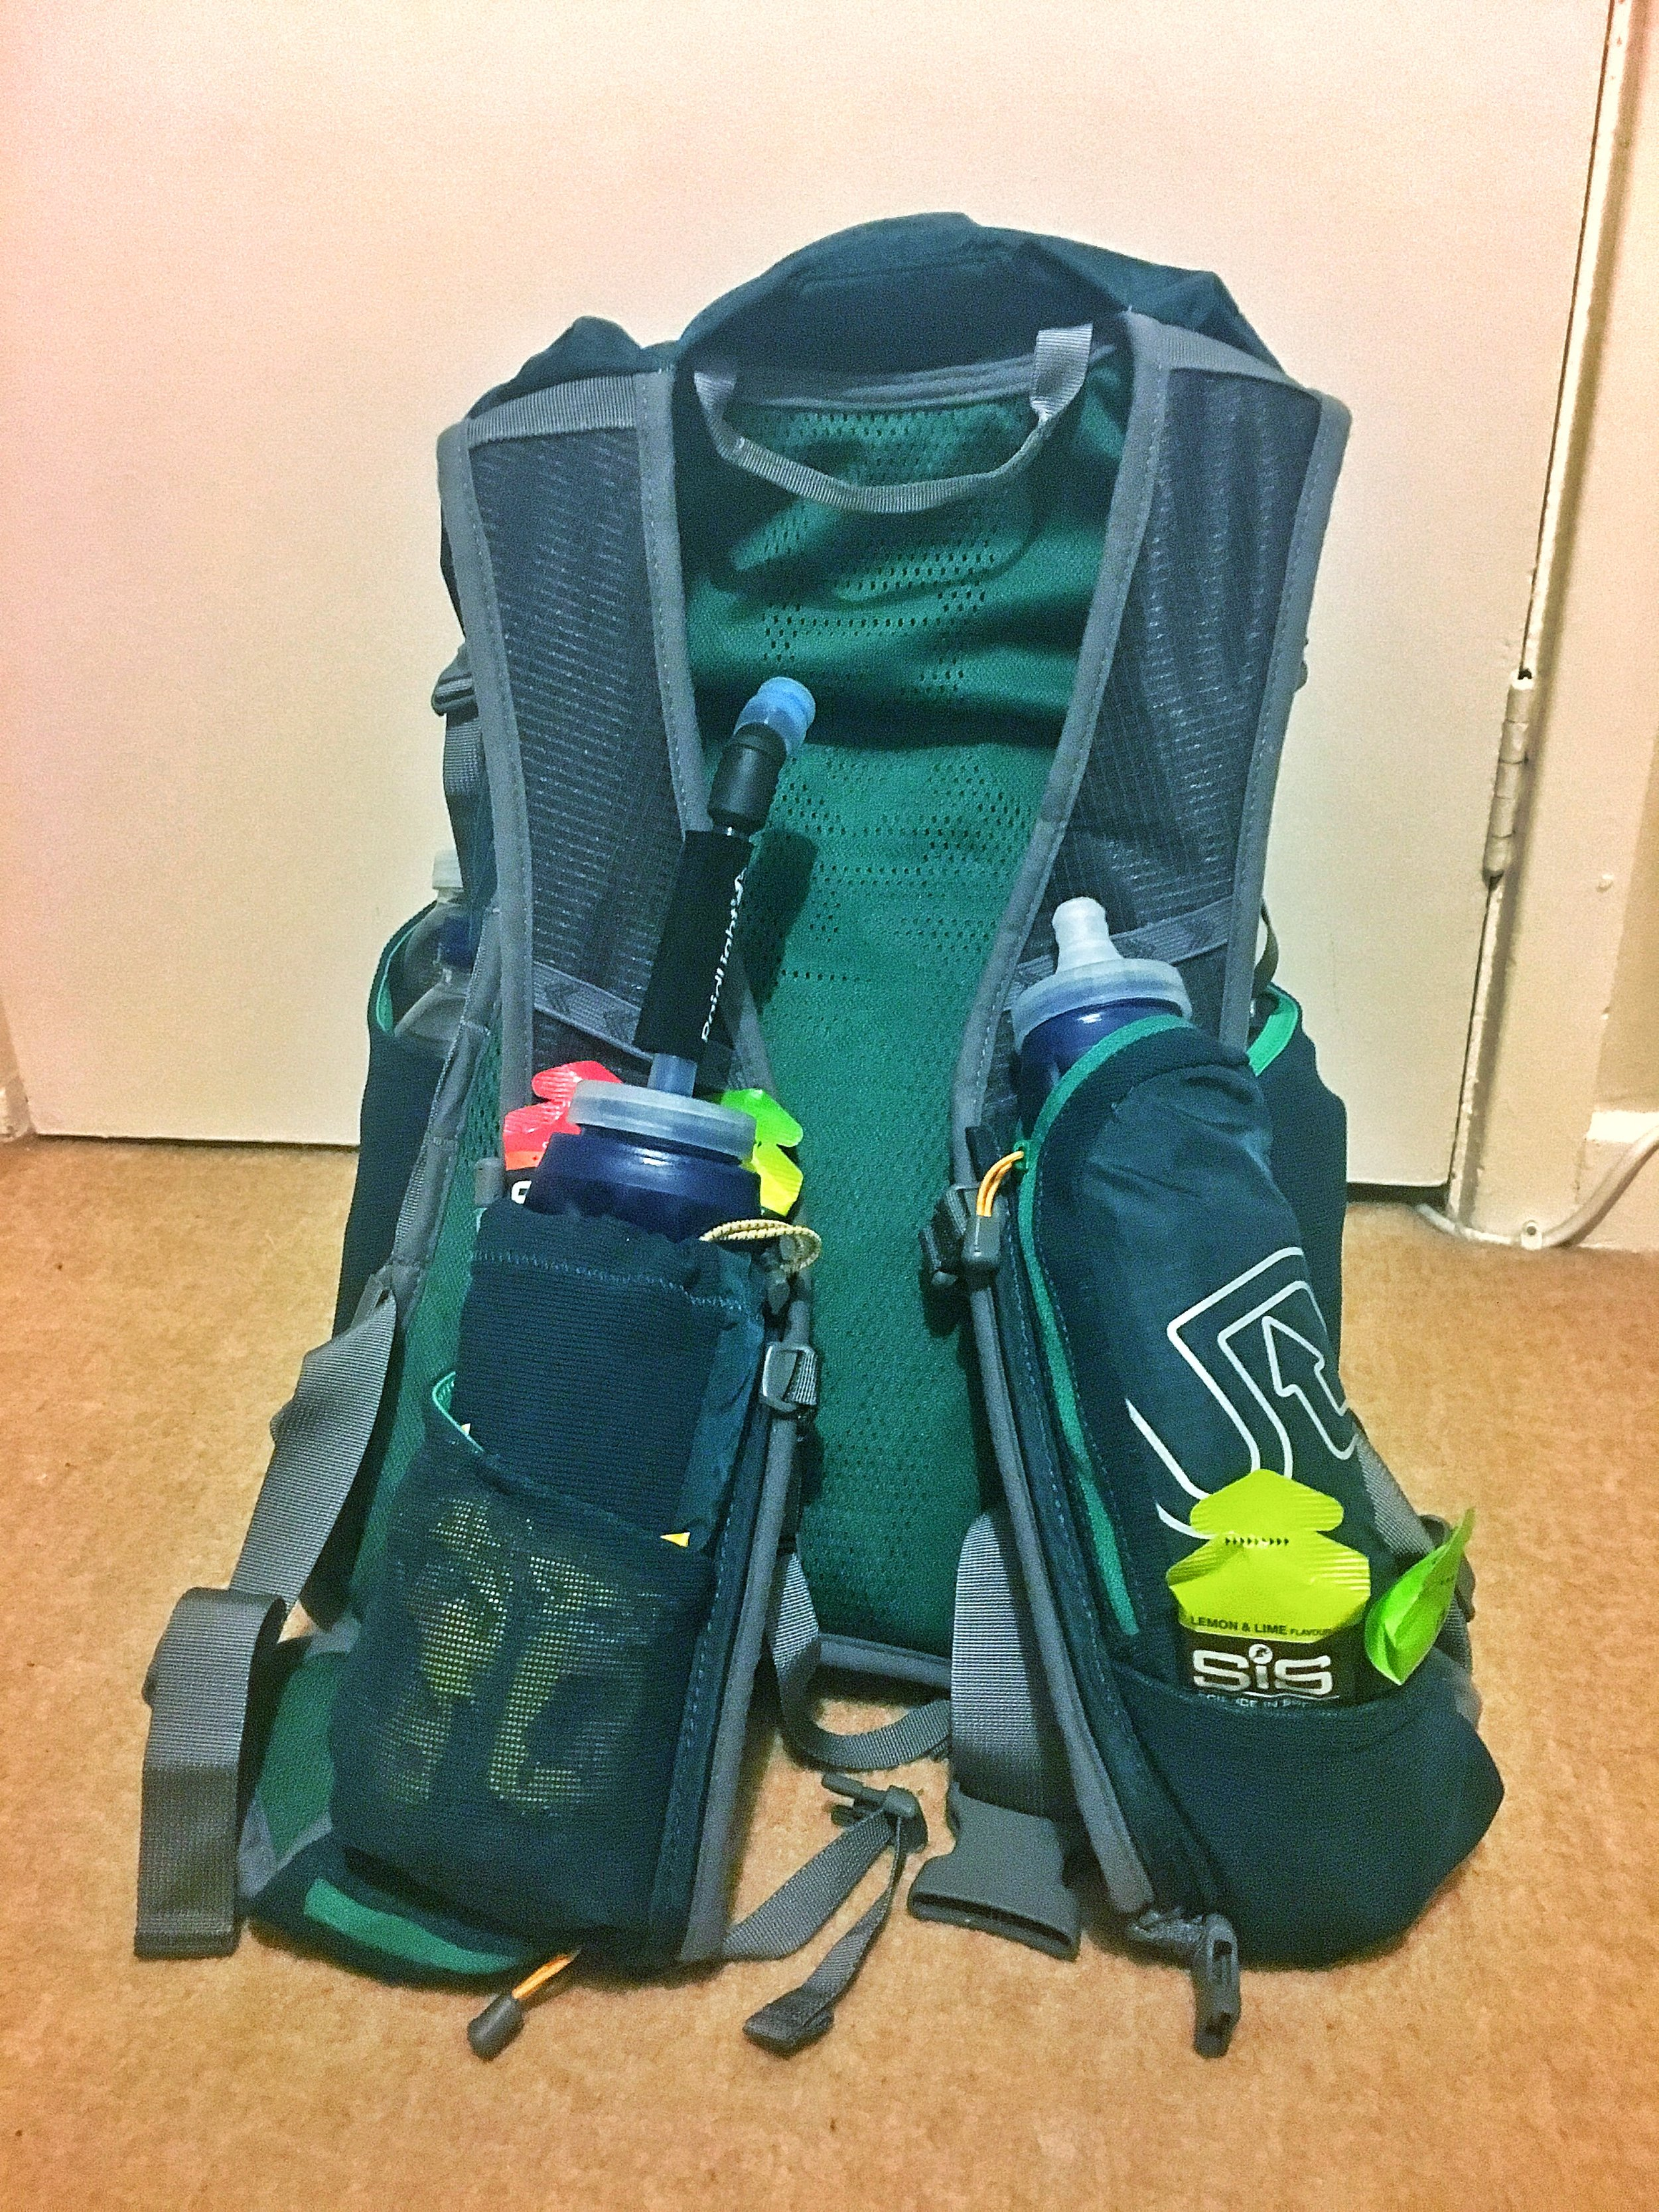 My bag during one of the South Downs training runs (not with the front pack on)